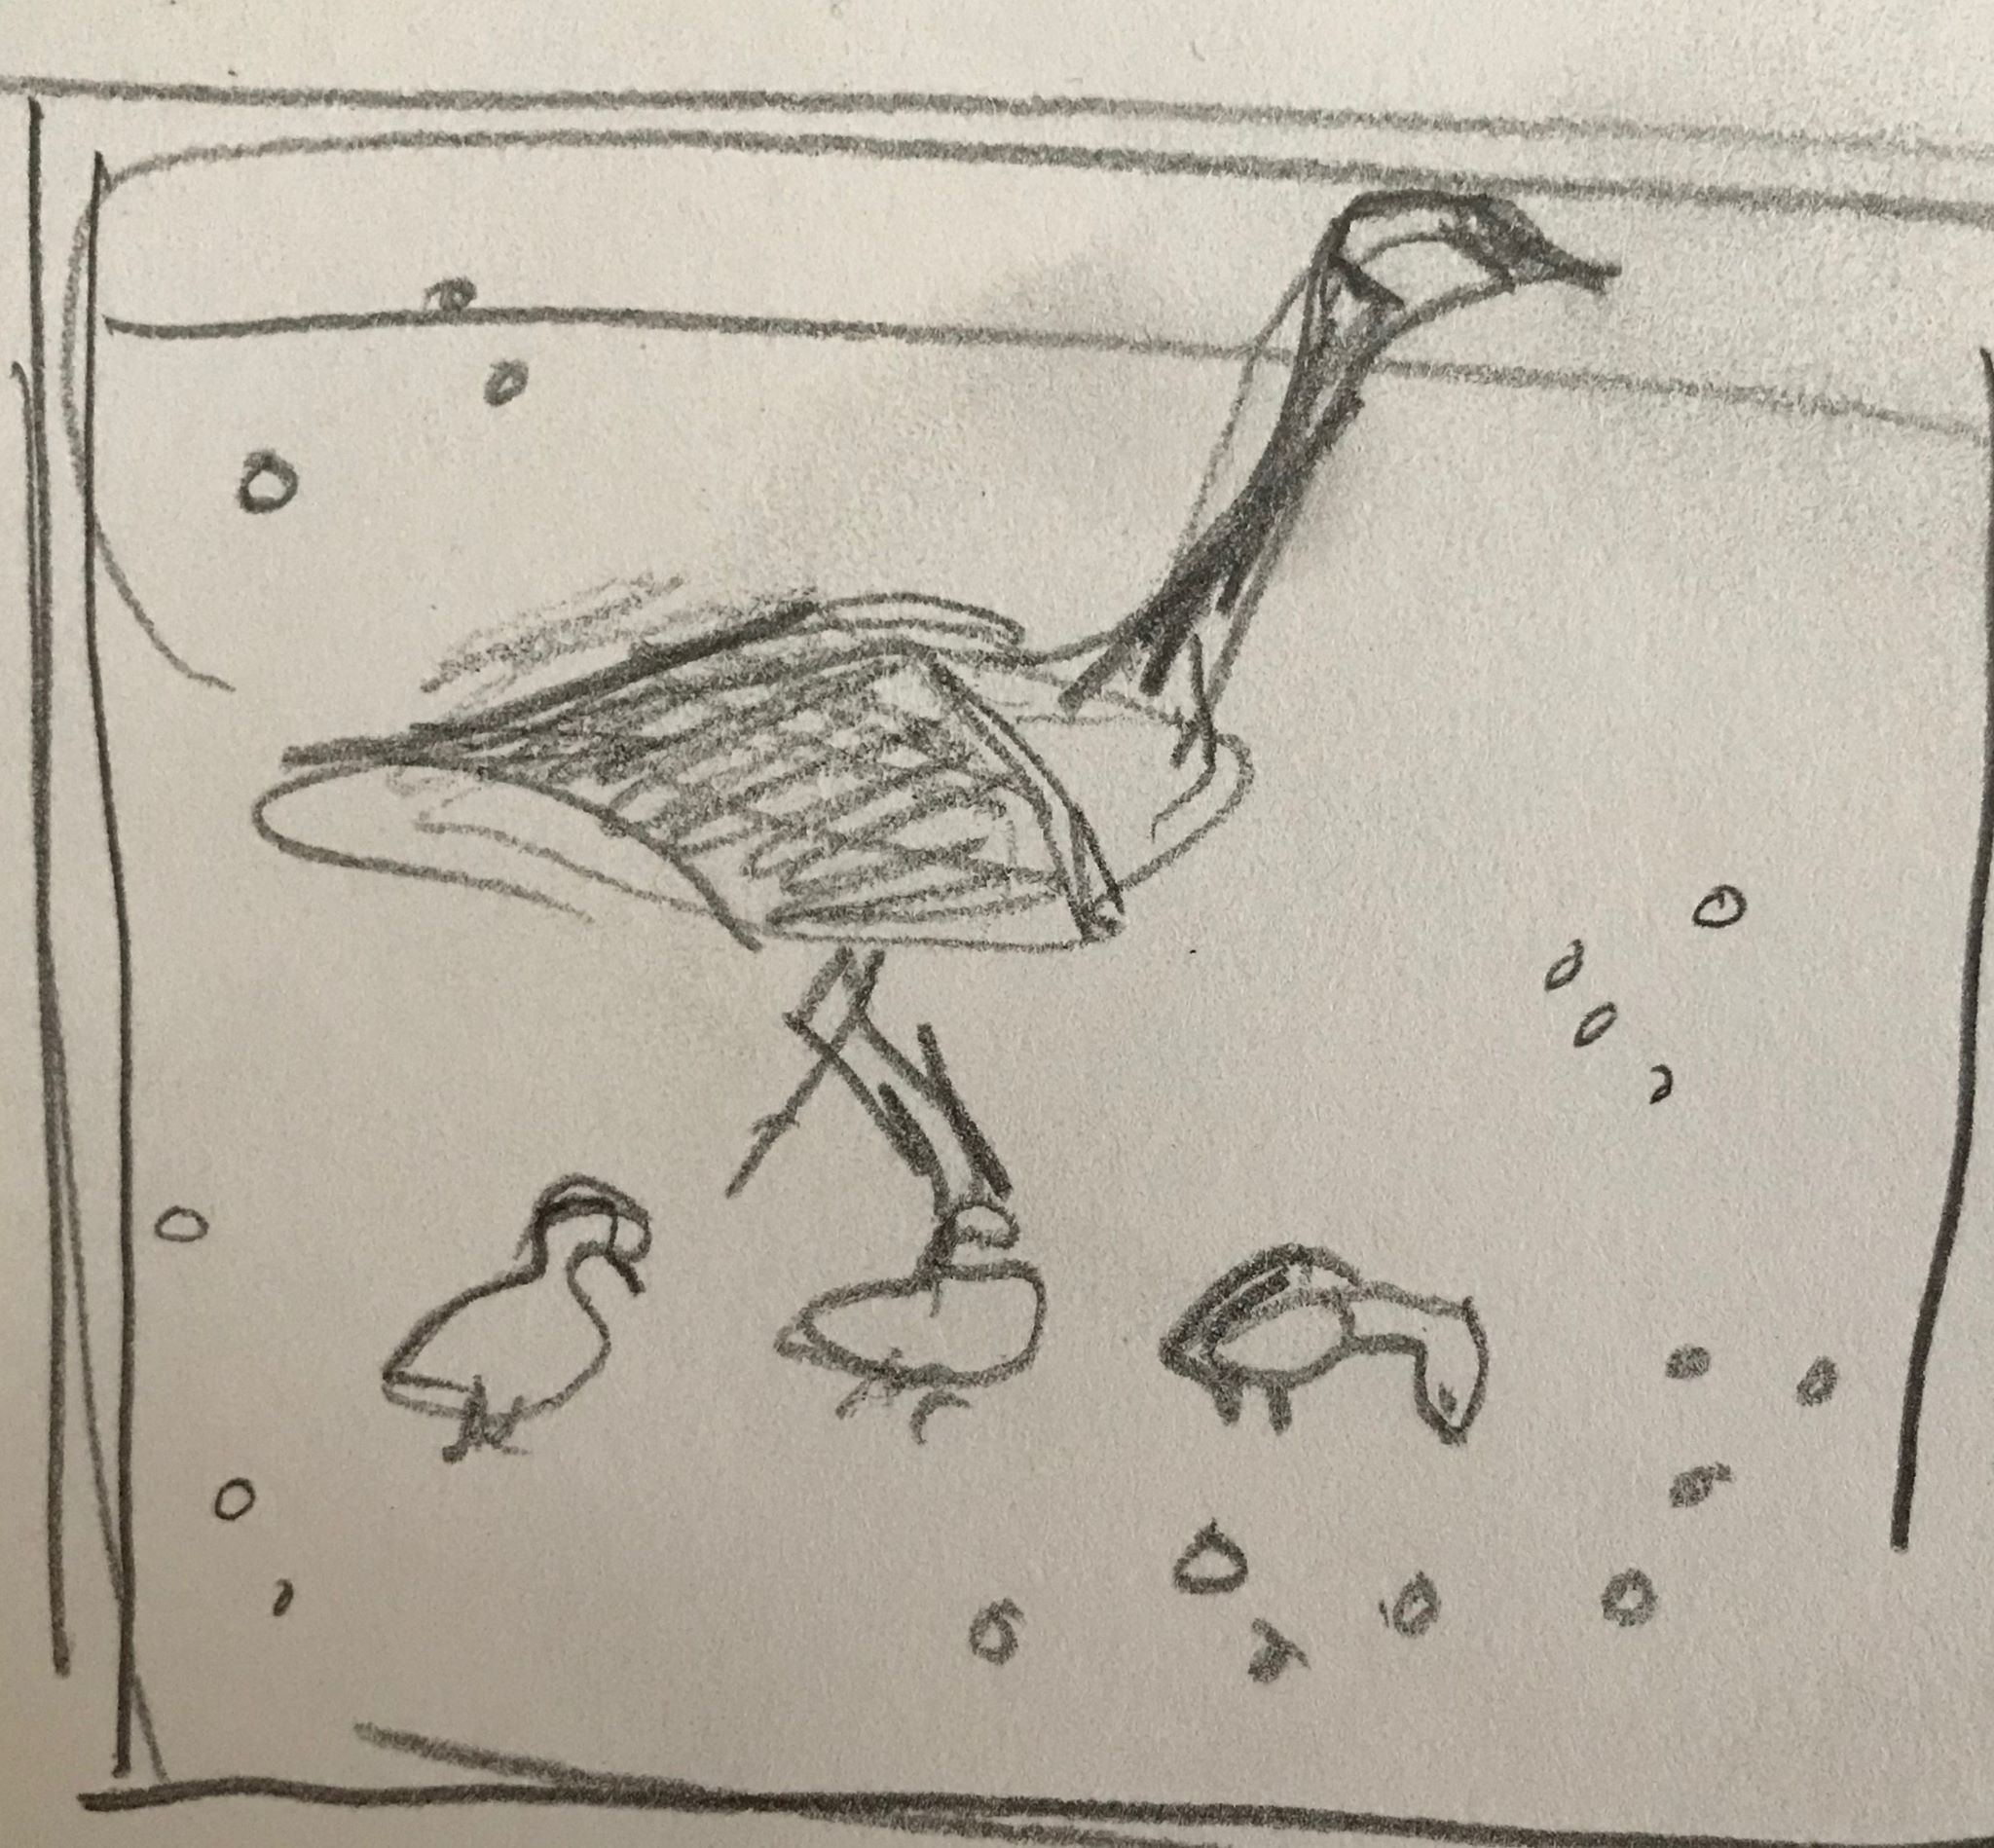 Sketch of a family of geese,  pencil on paper, 4x4 inches